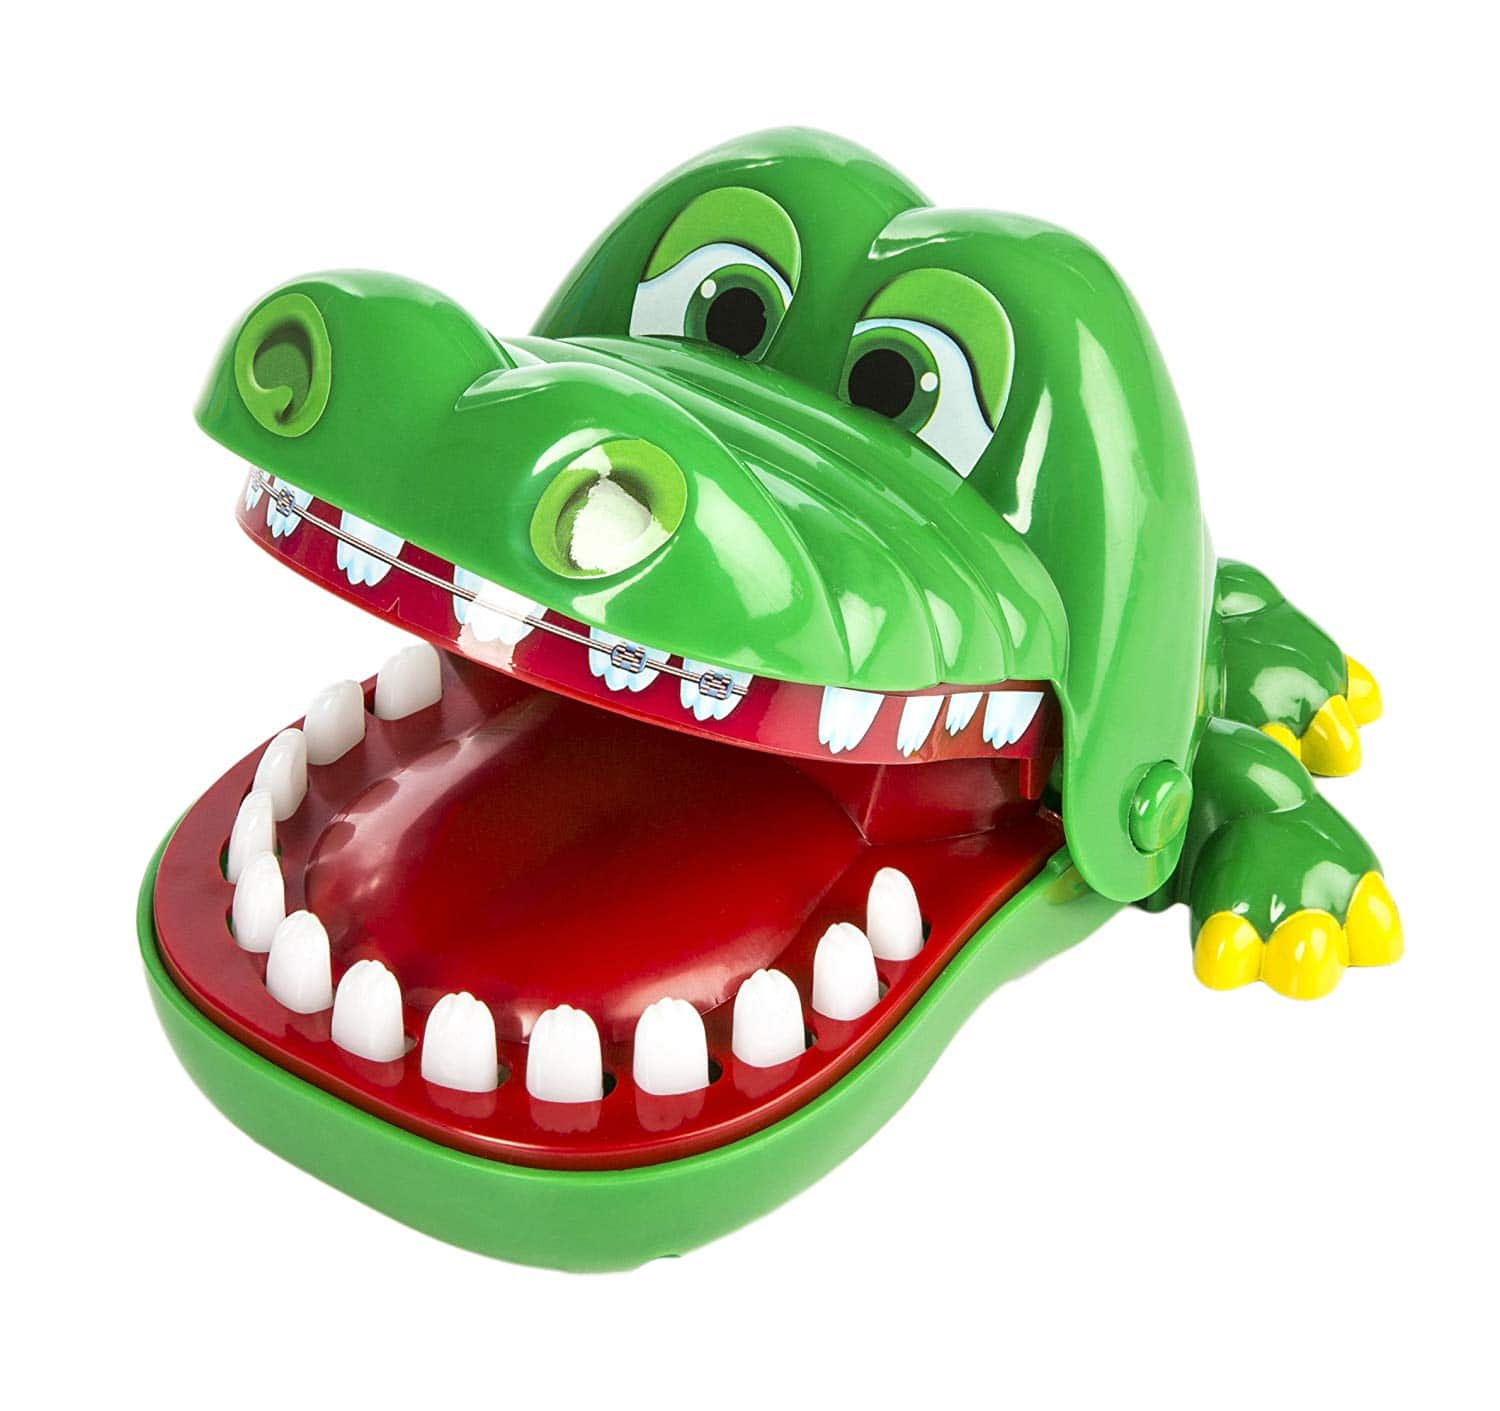 Crocodile Dentist - A Grouchy Friend with a Grievous Toothache - 1 to 4  Players - Ages 4 and Up  4.95 cdda90ffa7